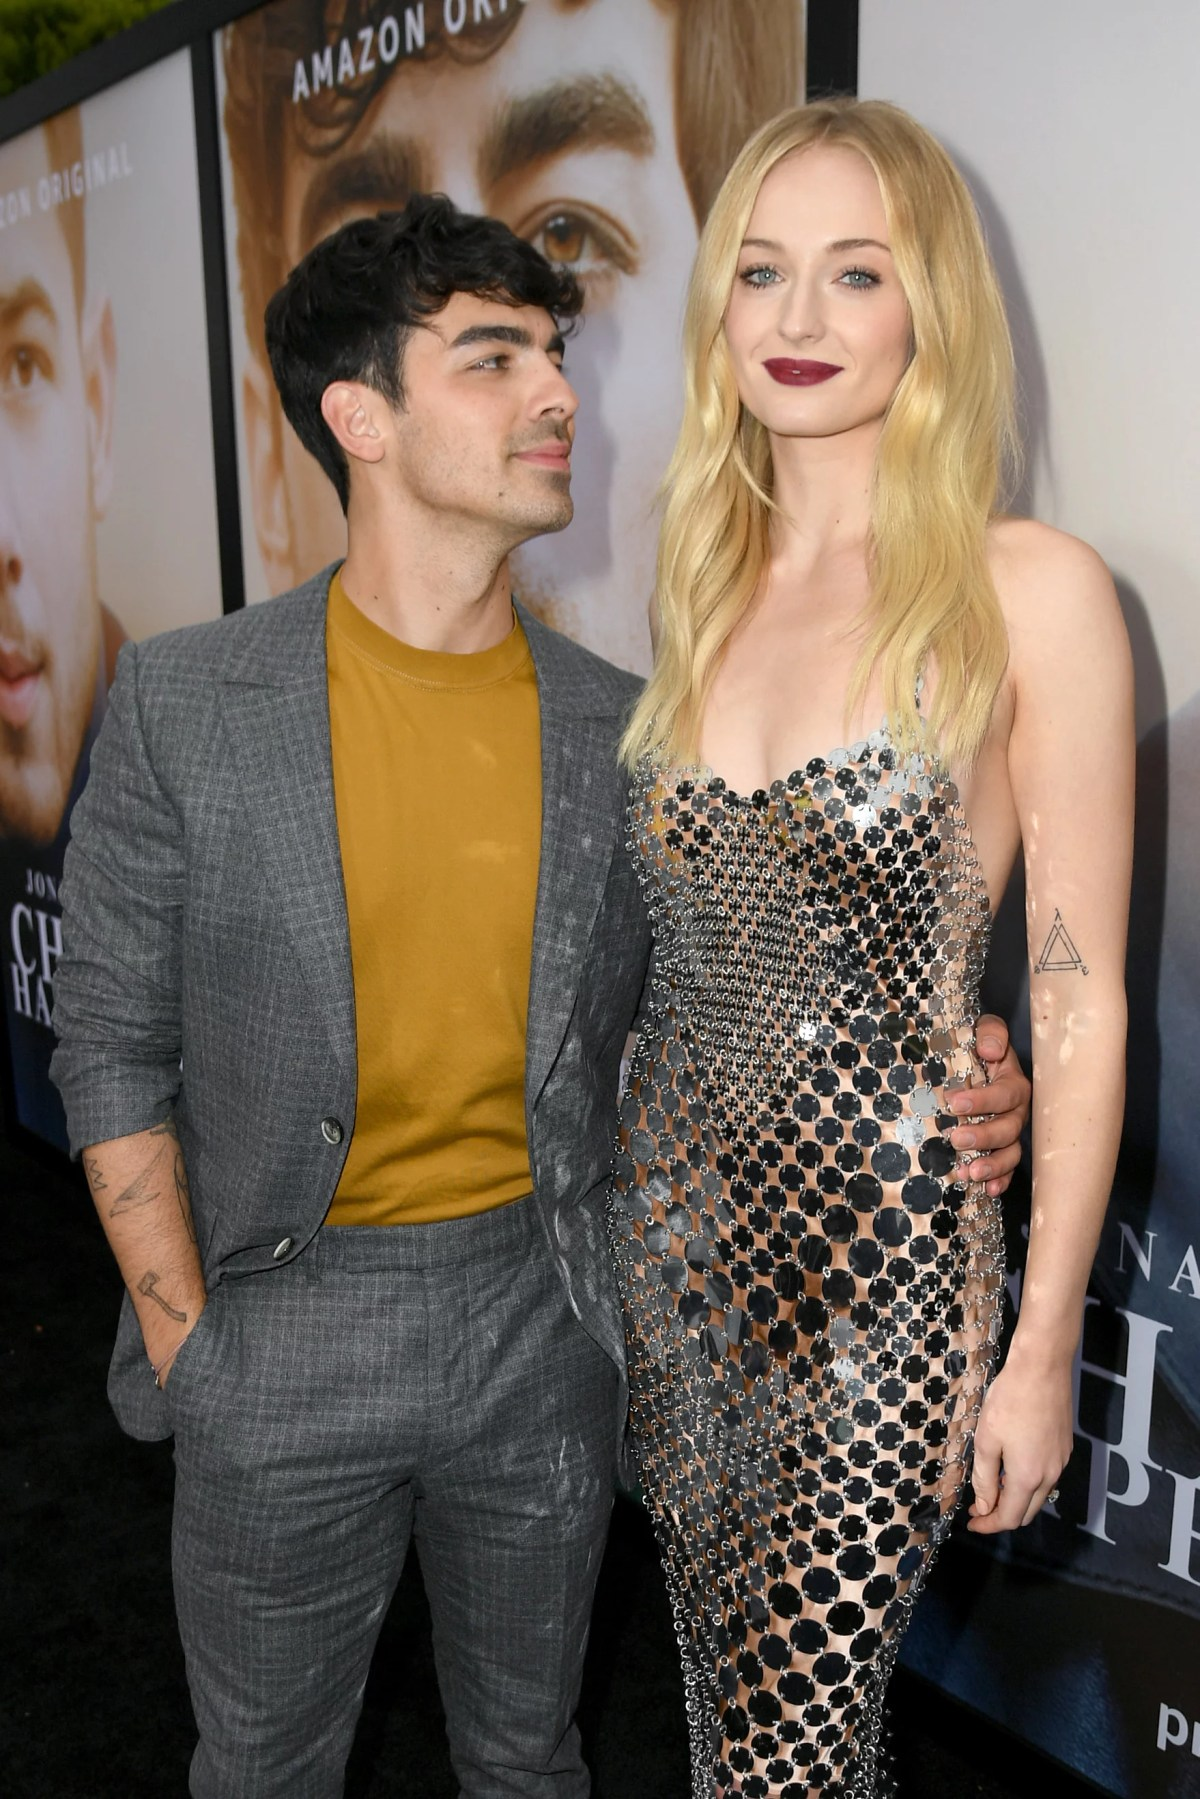 LOS ANGELES, CALIFORNIA - JUNE 03: Joe Jonas (L) and Sophie Turner attend the Premiere of Amazon Prime Video's 'Chasing Happiness' at Regency Bruin Theatre on June 03, 2019 in Los Angeles, California. (Photo by Kevin Winter/Getty Images)